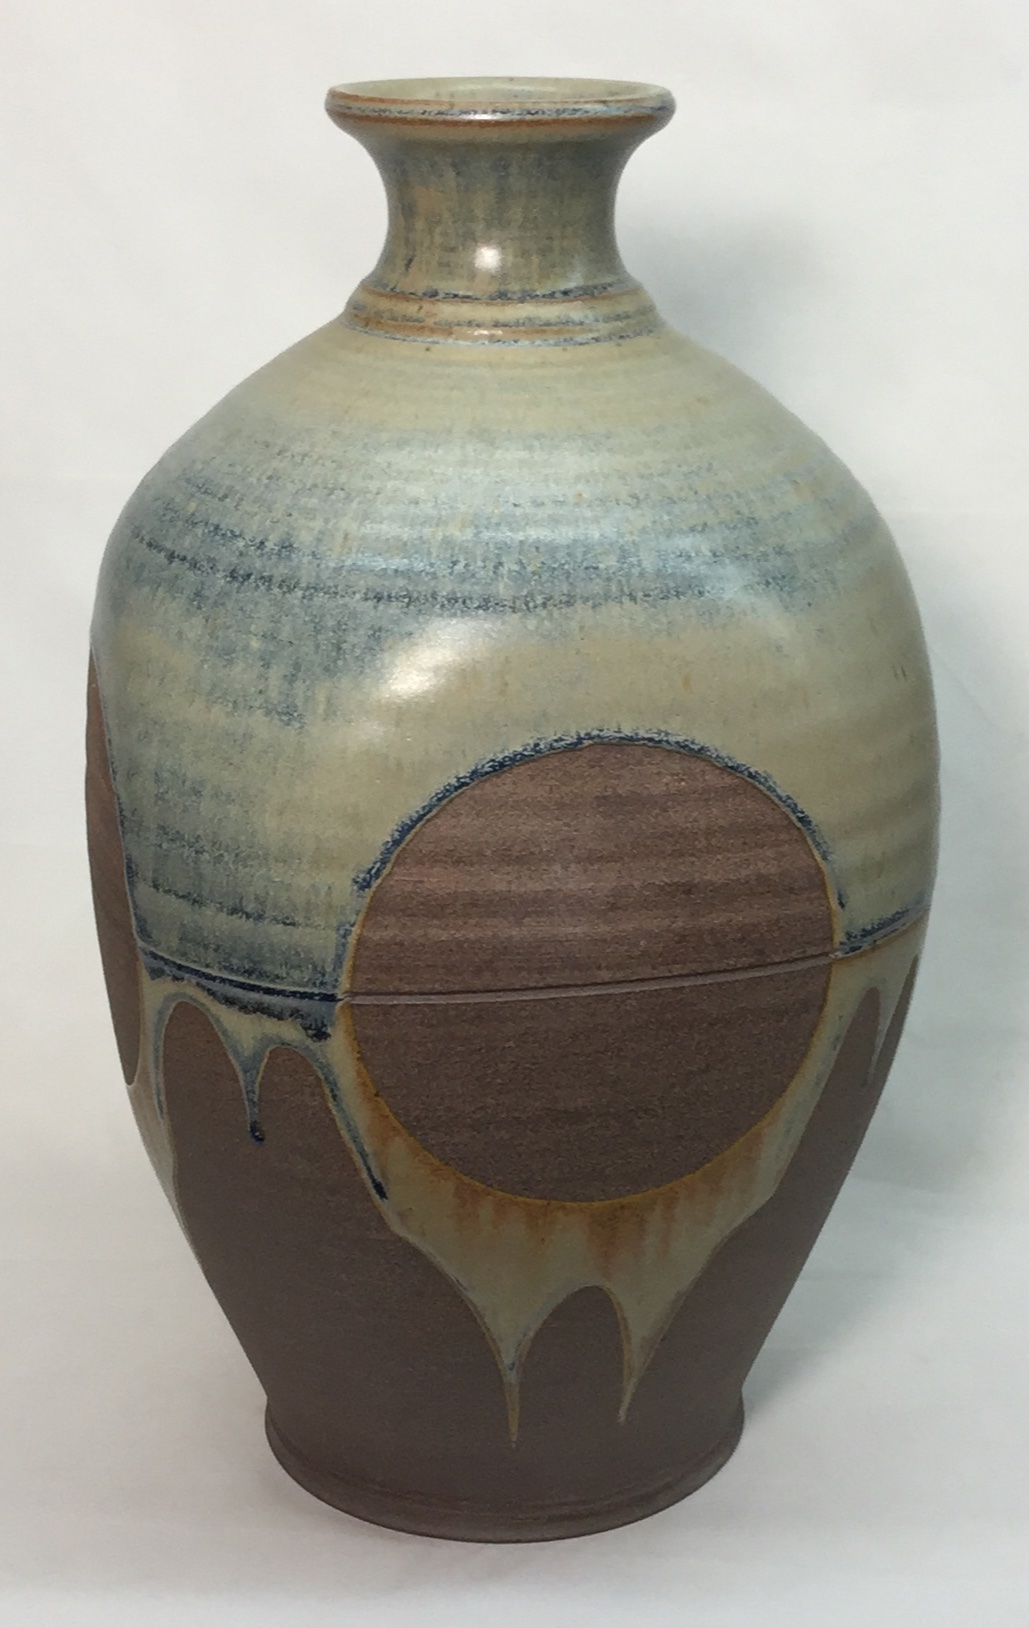 Cone 10R Reduction Fired Vase by Tony Hansen